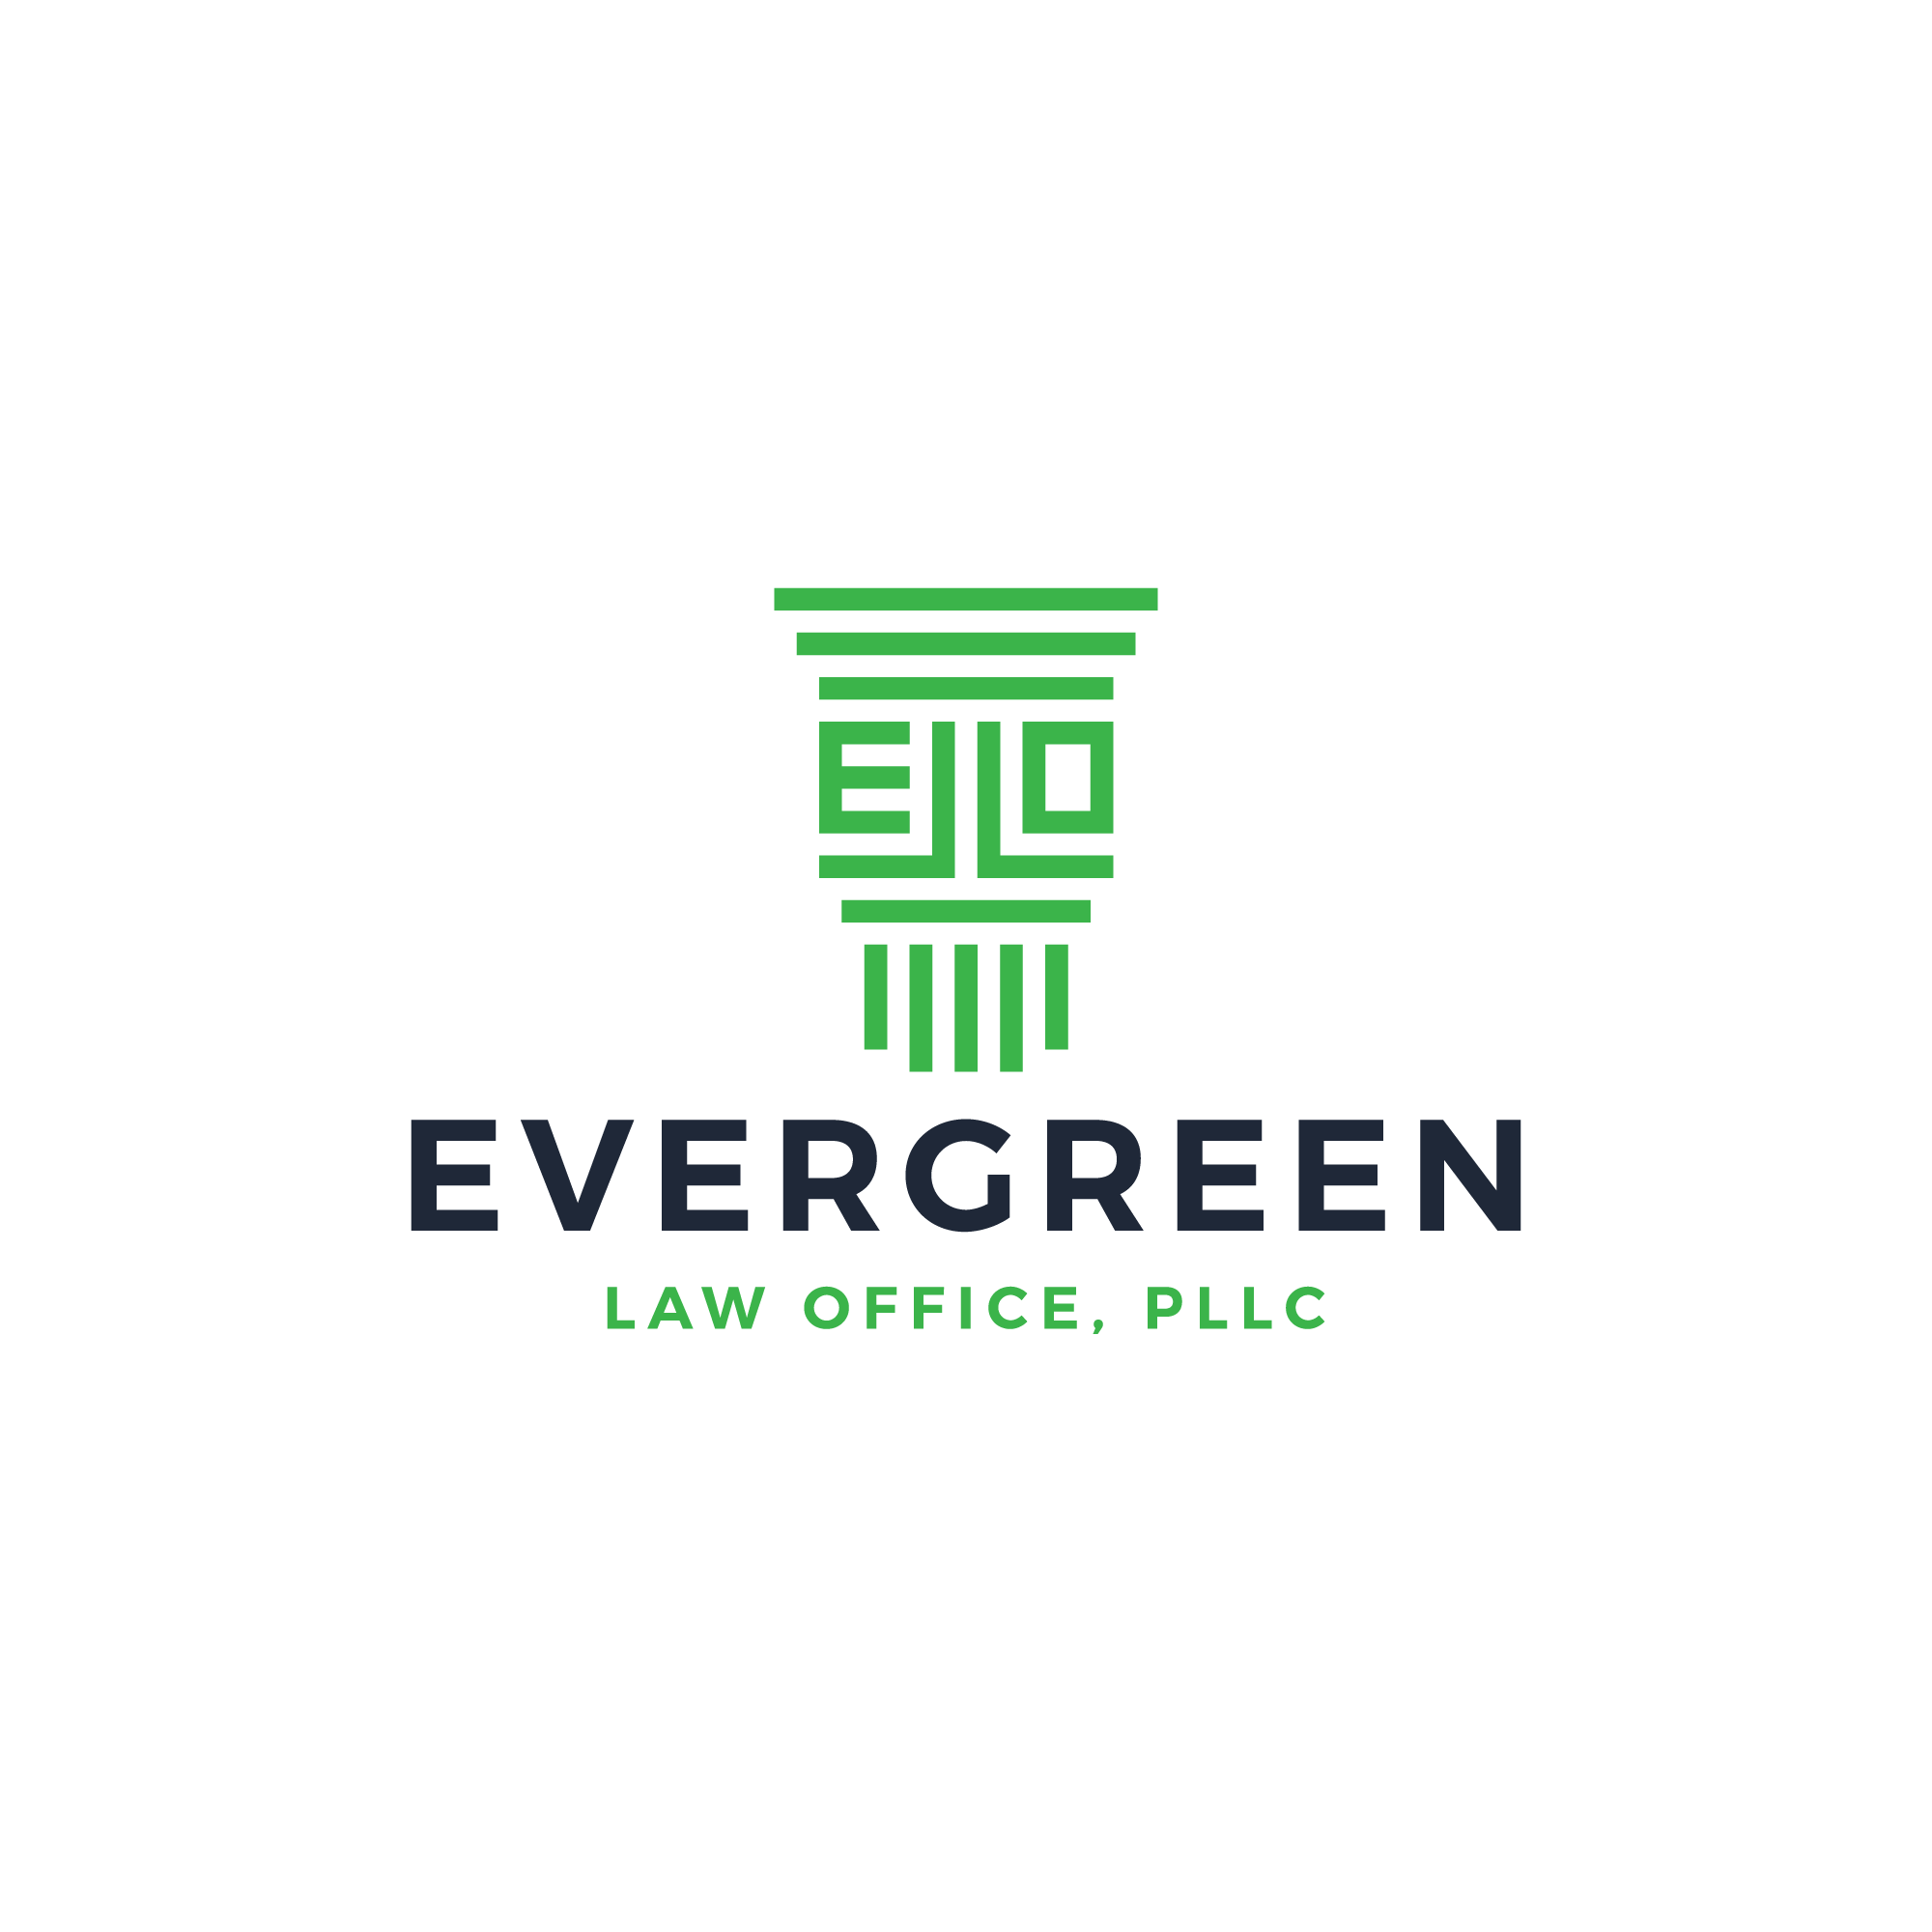 Create a logo for a progressive and energetic law office wanting to avoid drab and dull